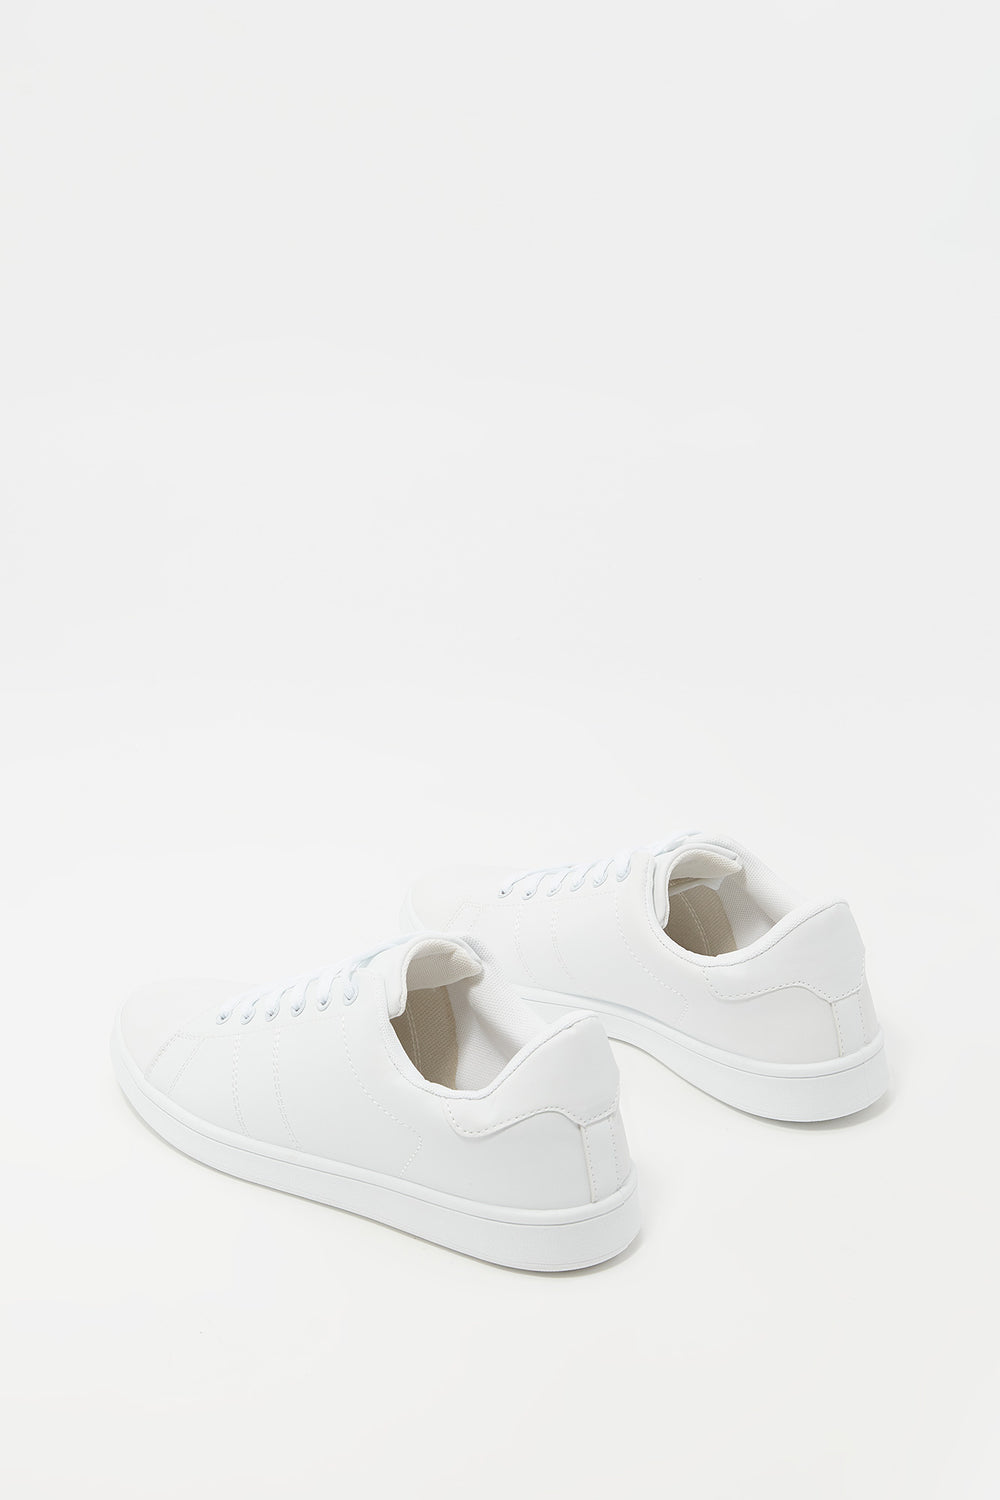 Lace-Up Faux Leather Tonal Sneaker White